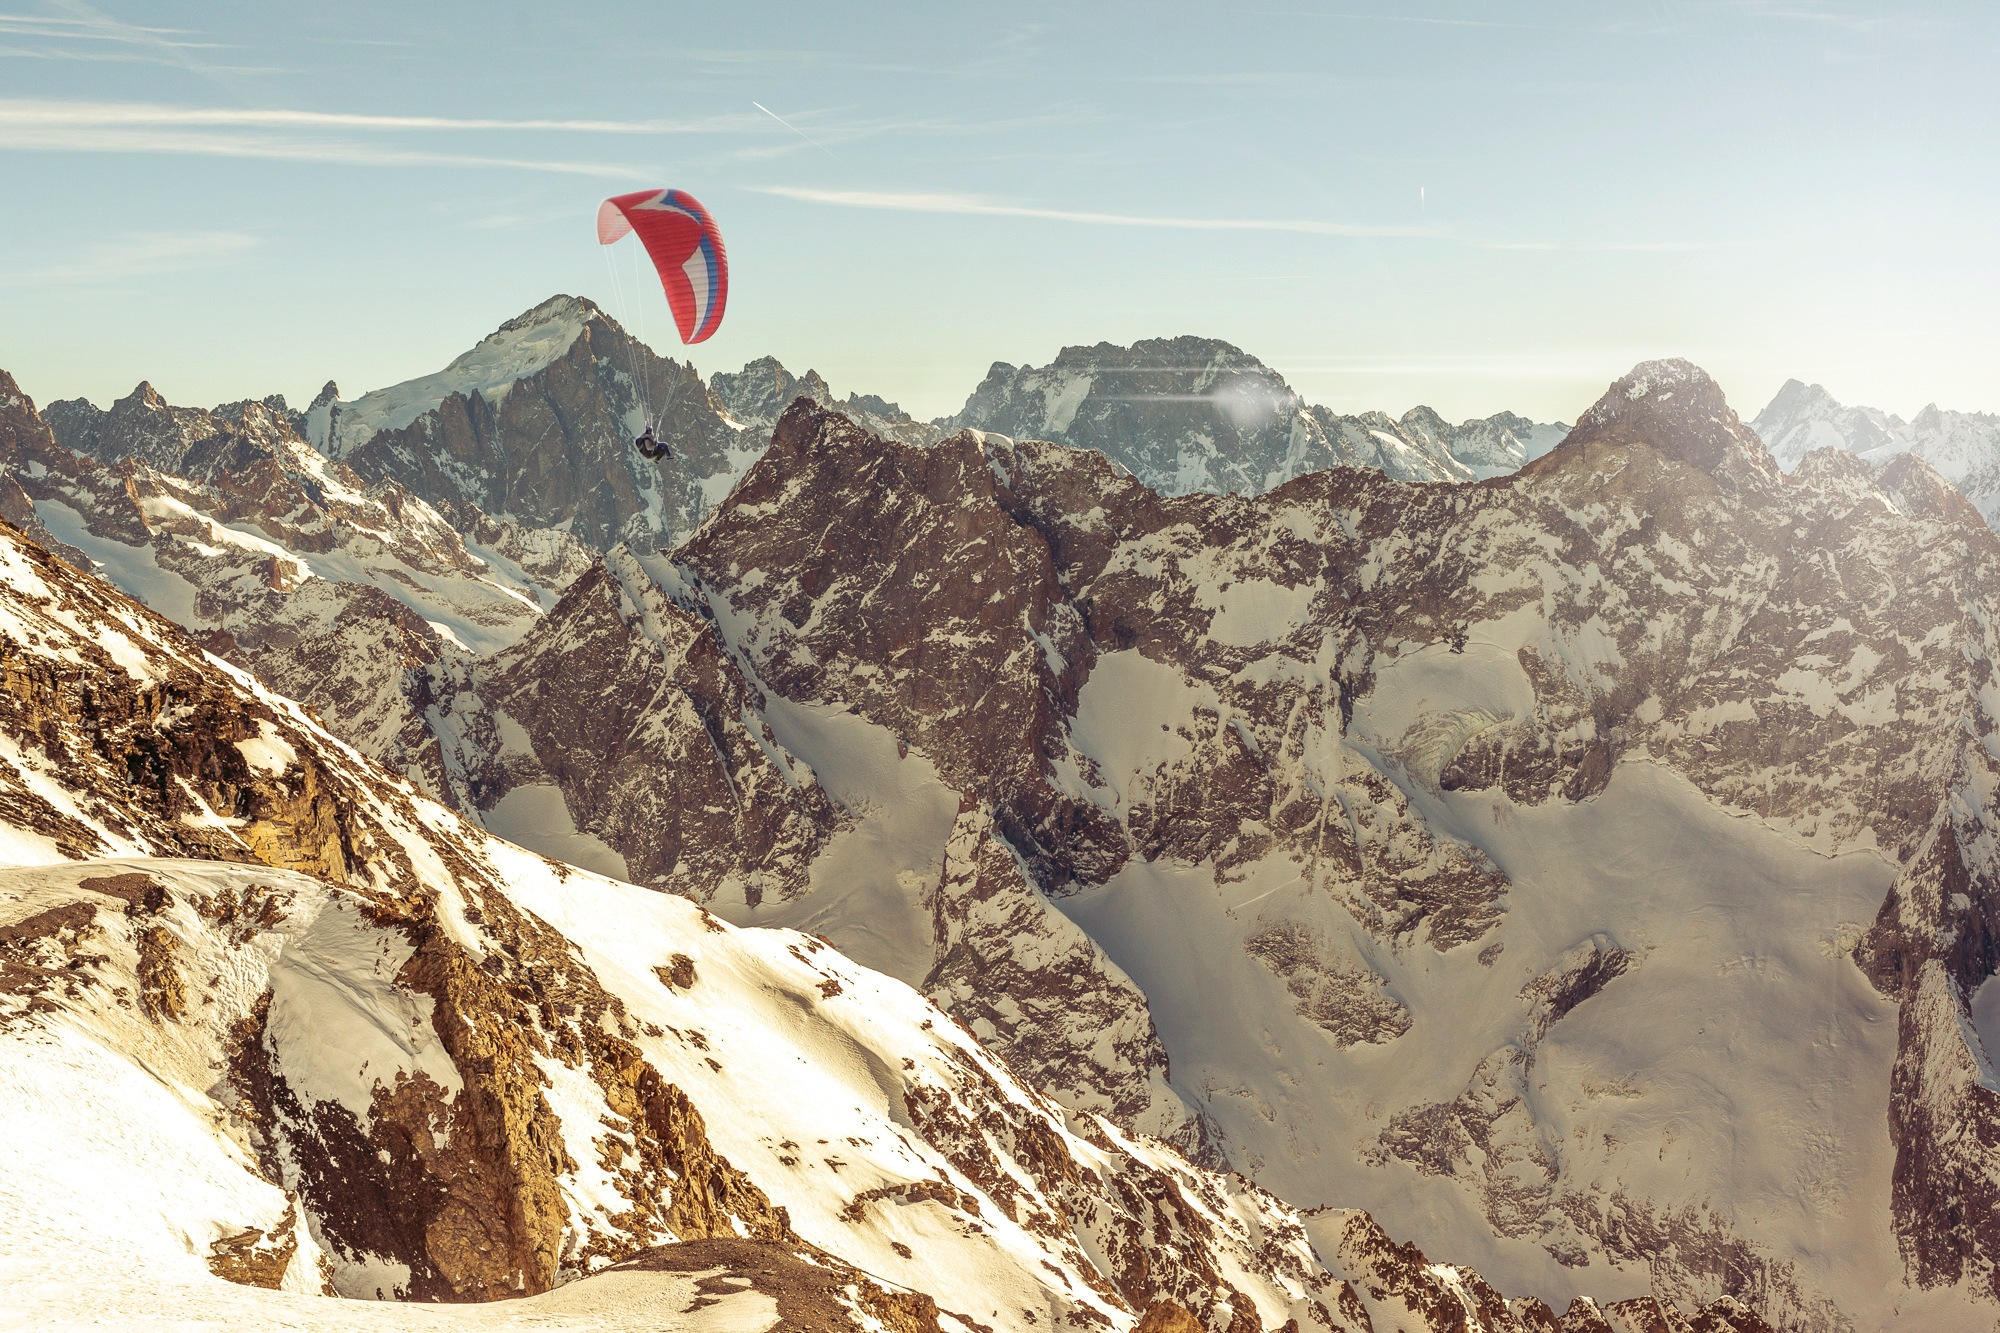 Paragliding the Alps peaks by dnyphoto